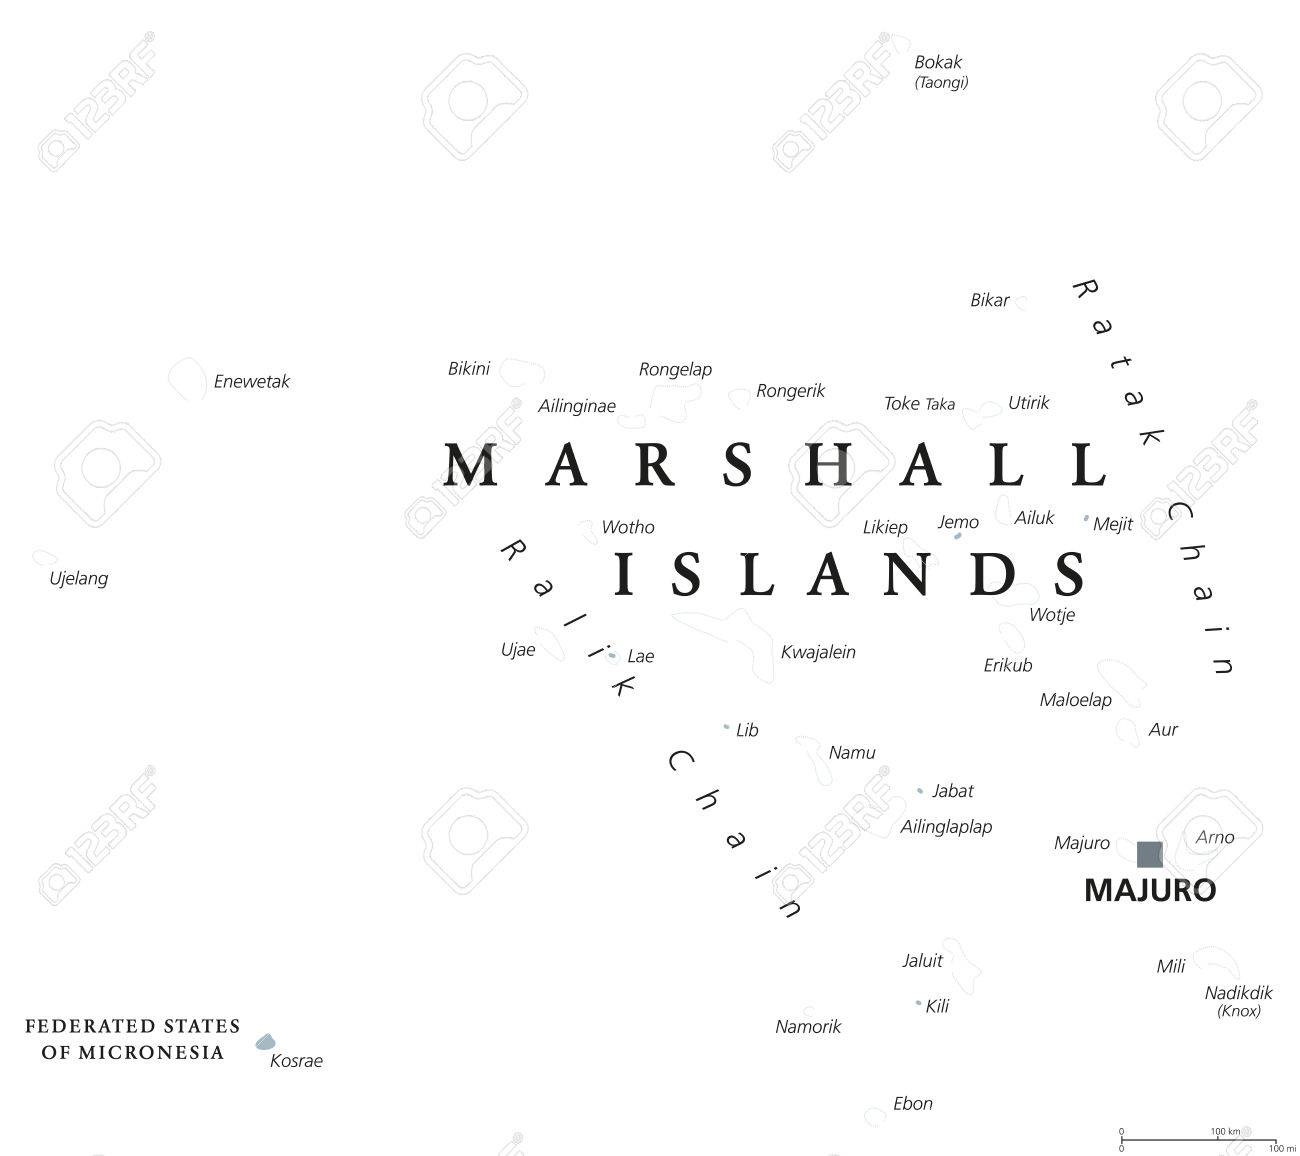 Marshall Islands political map with capital Majuro. Republic.. on rwanda map, hawaii map, philippines map, belize map, northern mariana islands, american samoa, burma map, wake island, gilbert islands map, macau map, micronesia map, dominican republic map, east timor map, palau map, federated states of micronesia, solomon islands, mariana island map, egypt map, australia map, new caledonia, pacific map, alaska map, puerto rico map, new caledonia map, cook islands, oceania map, caroline islands map, papua new guinea,